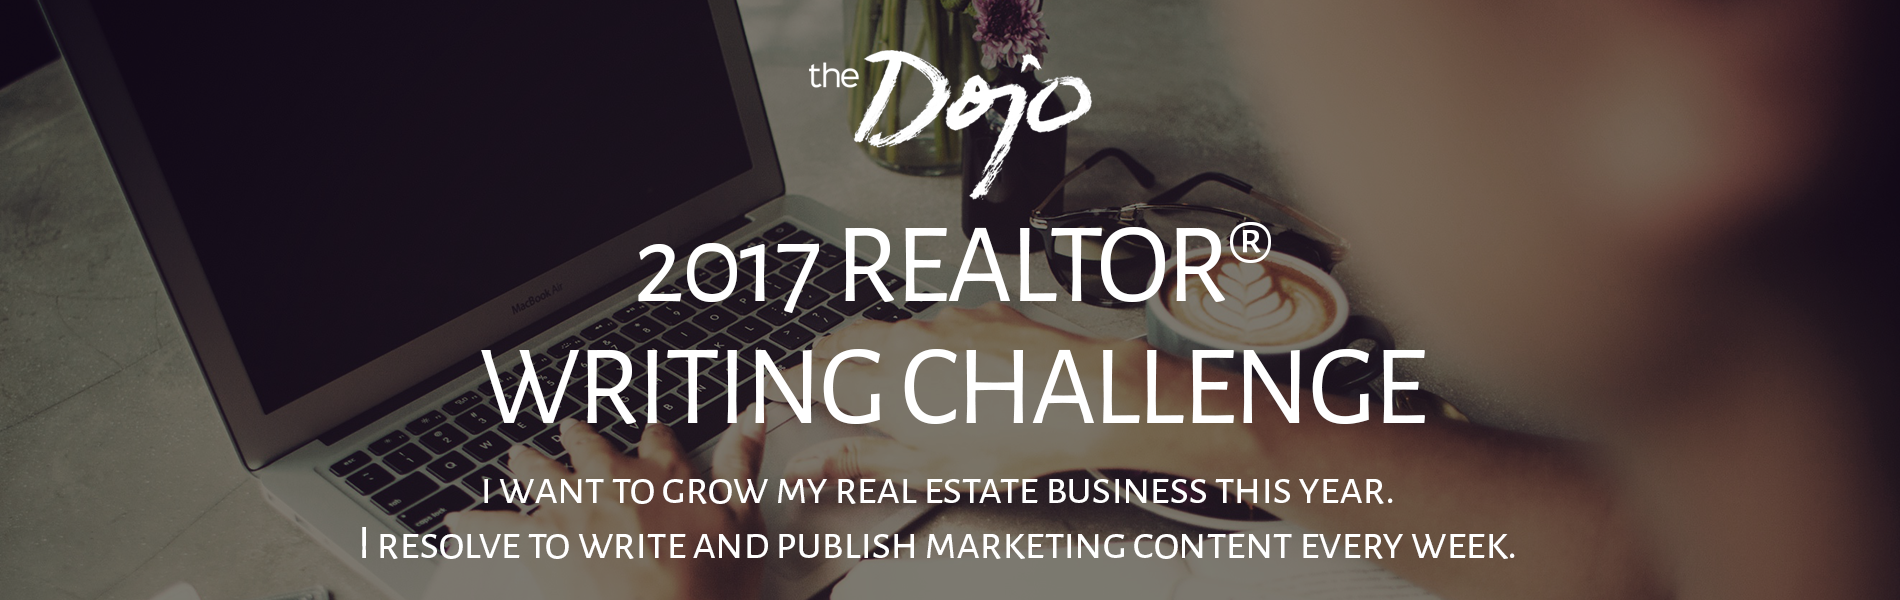 The Dojo is Challenging you to write marketing content every week this year